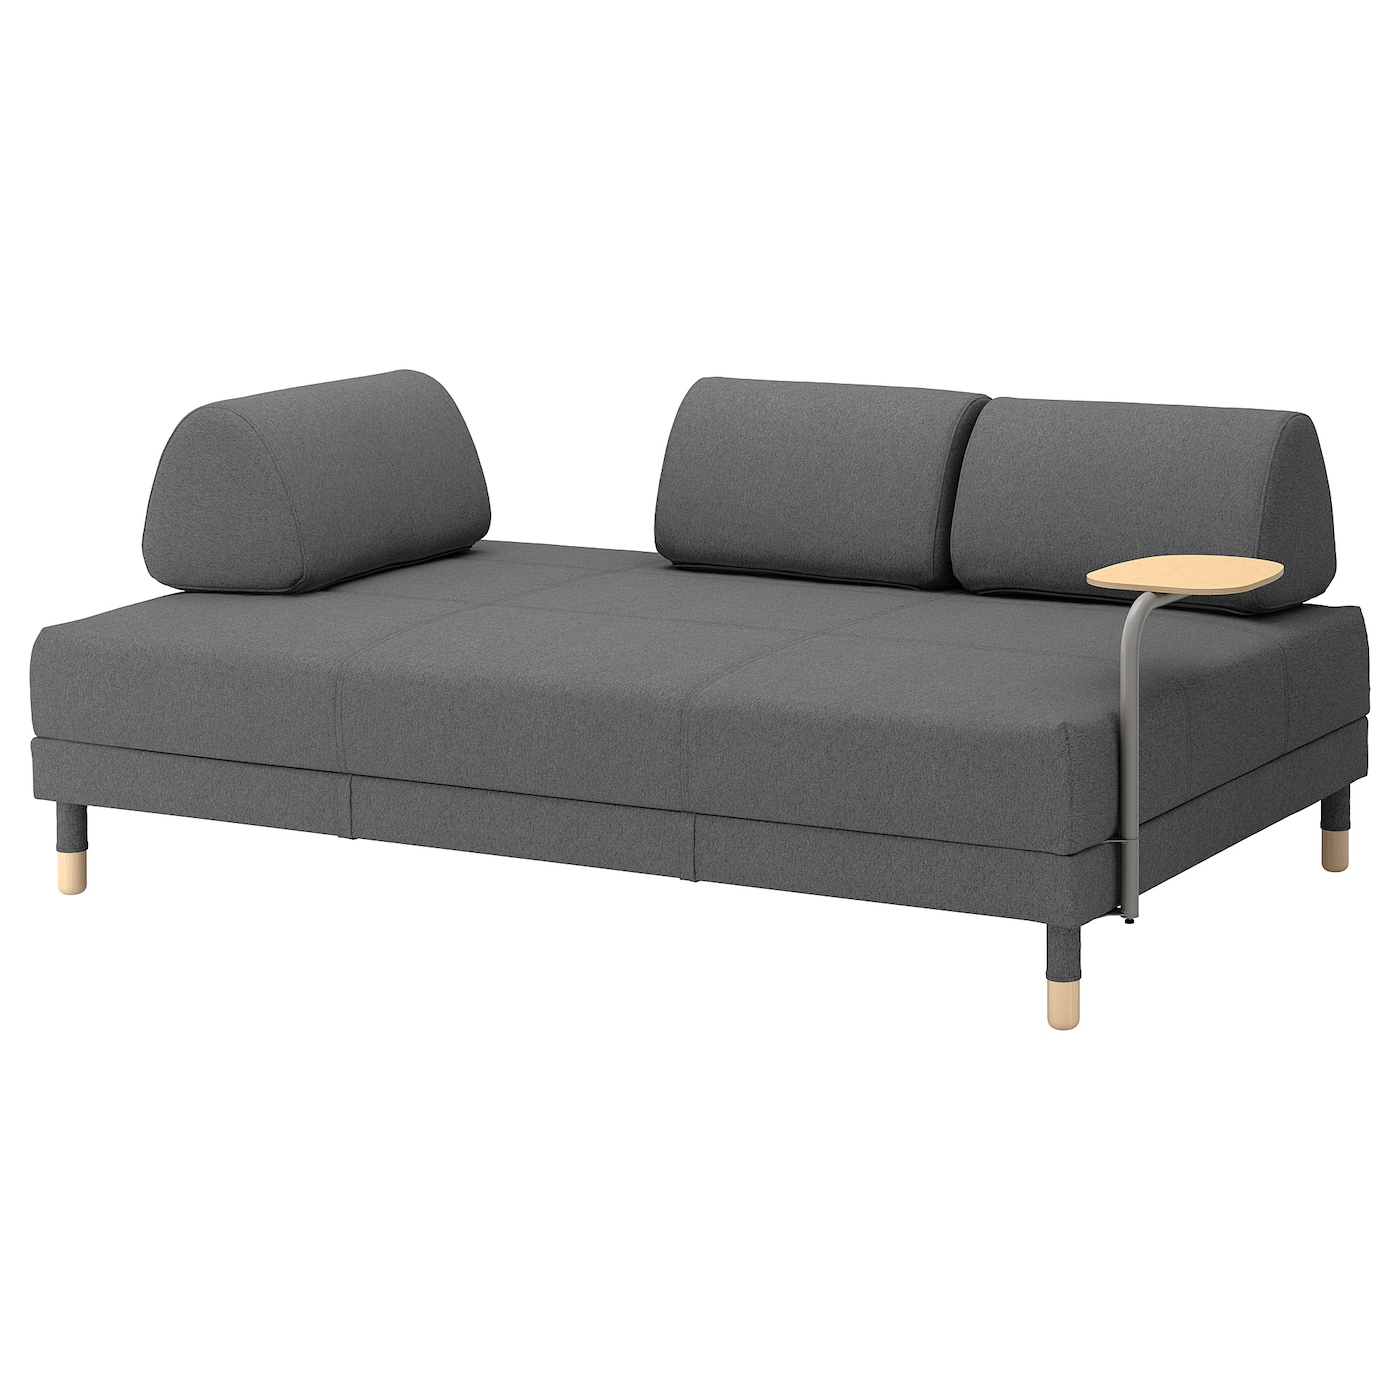 IKEA FLOTTEBO sofa-bed with side table